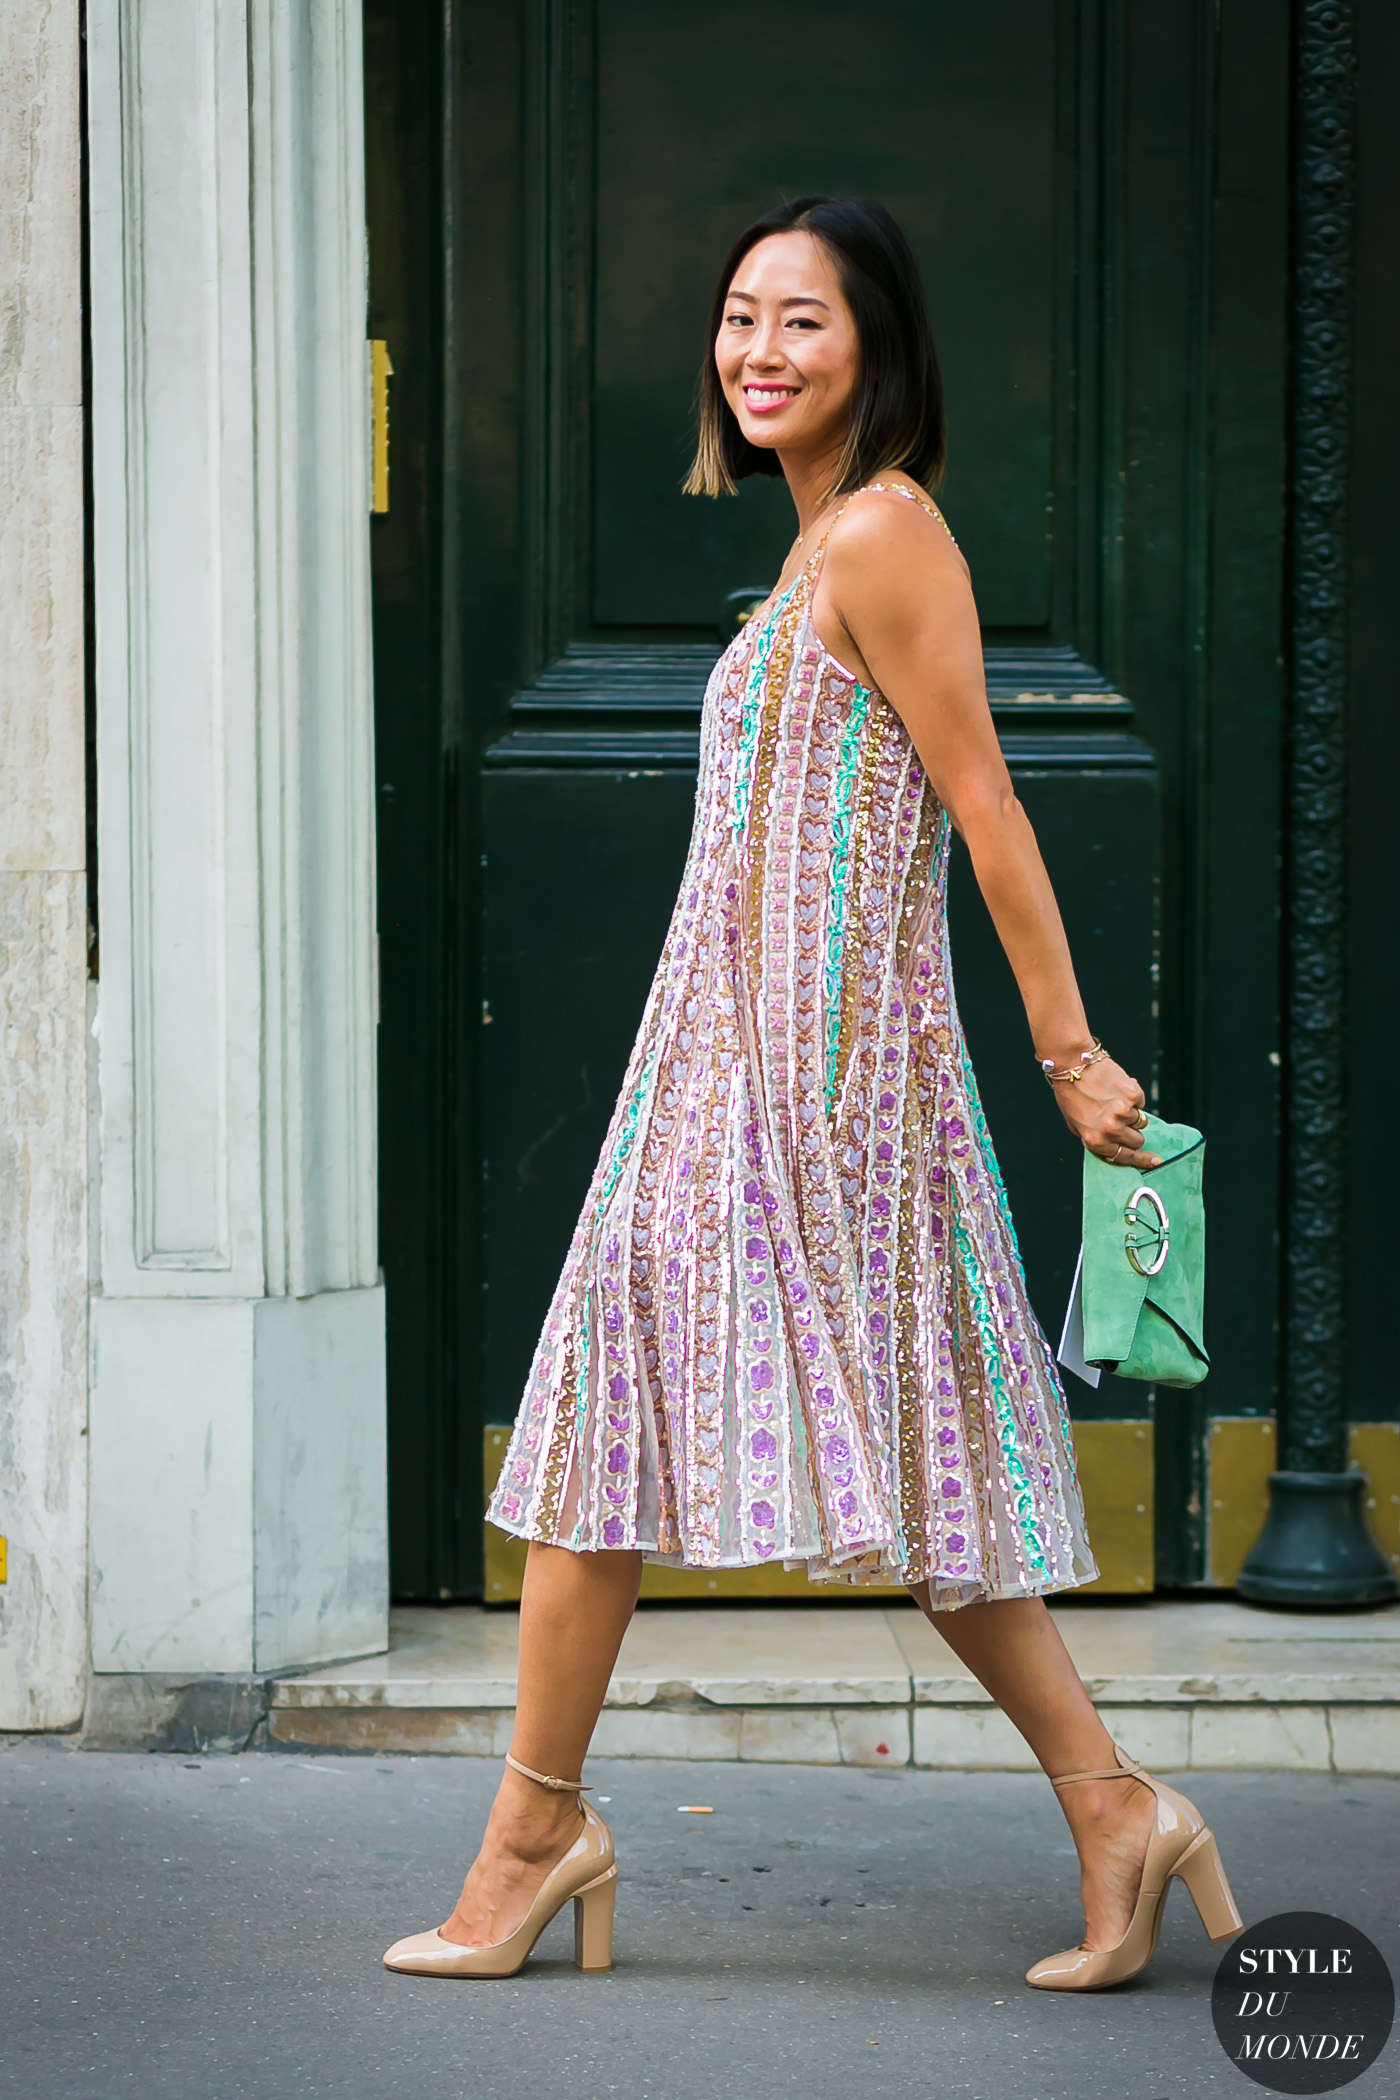 Aimee-Song-by-STYLEDUMONDE-Street-Style-Fashion-Photography0E2A0991.jpg